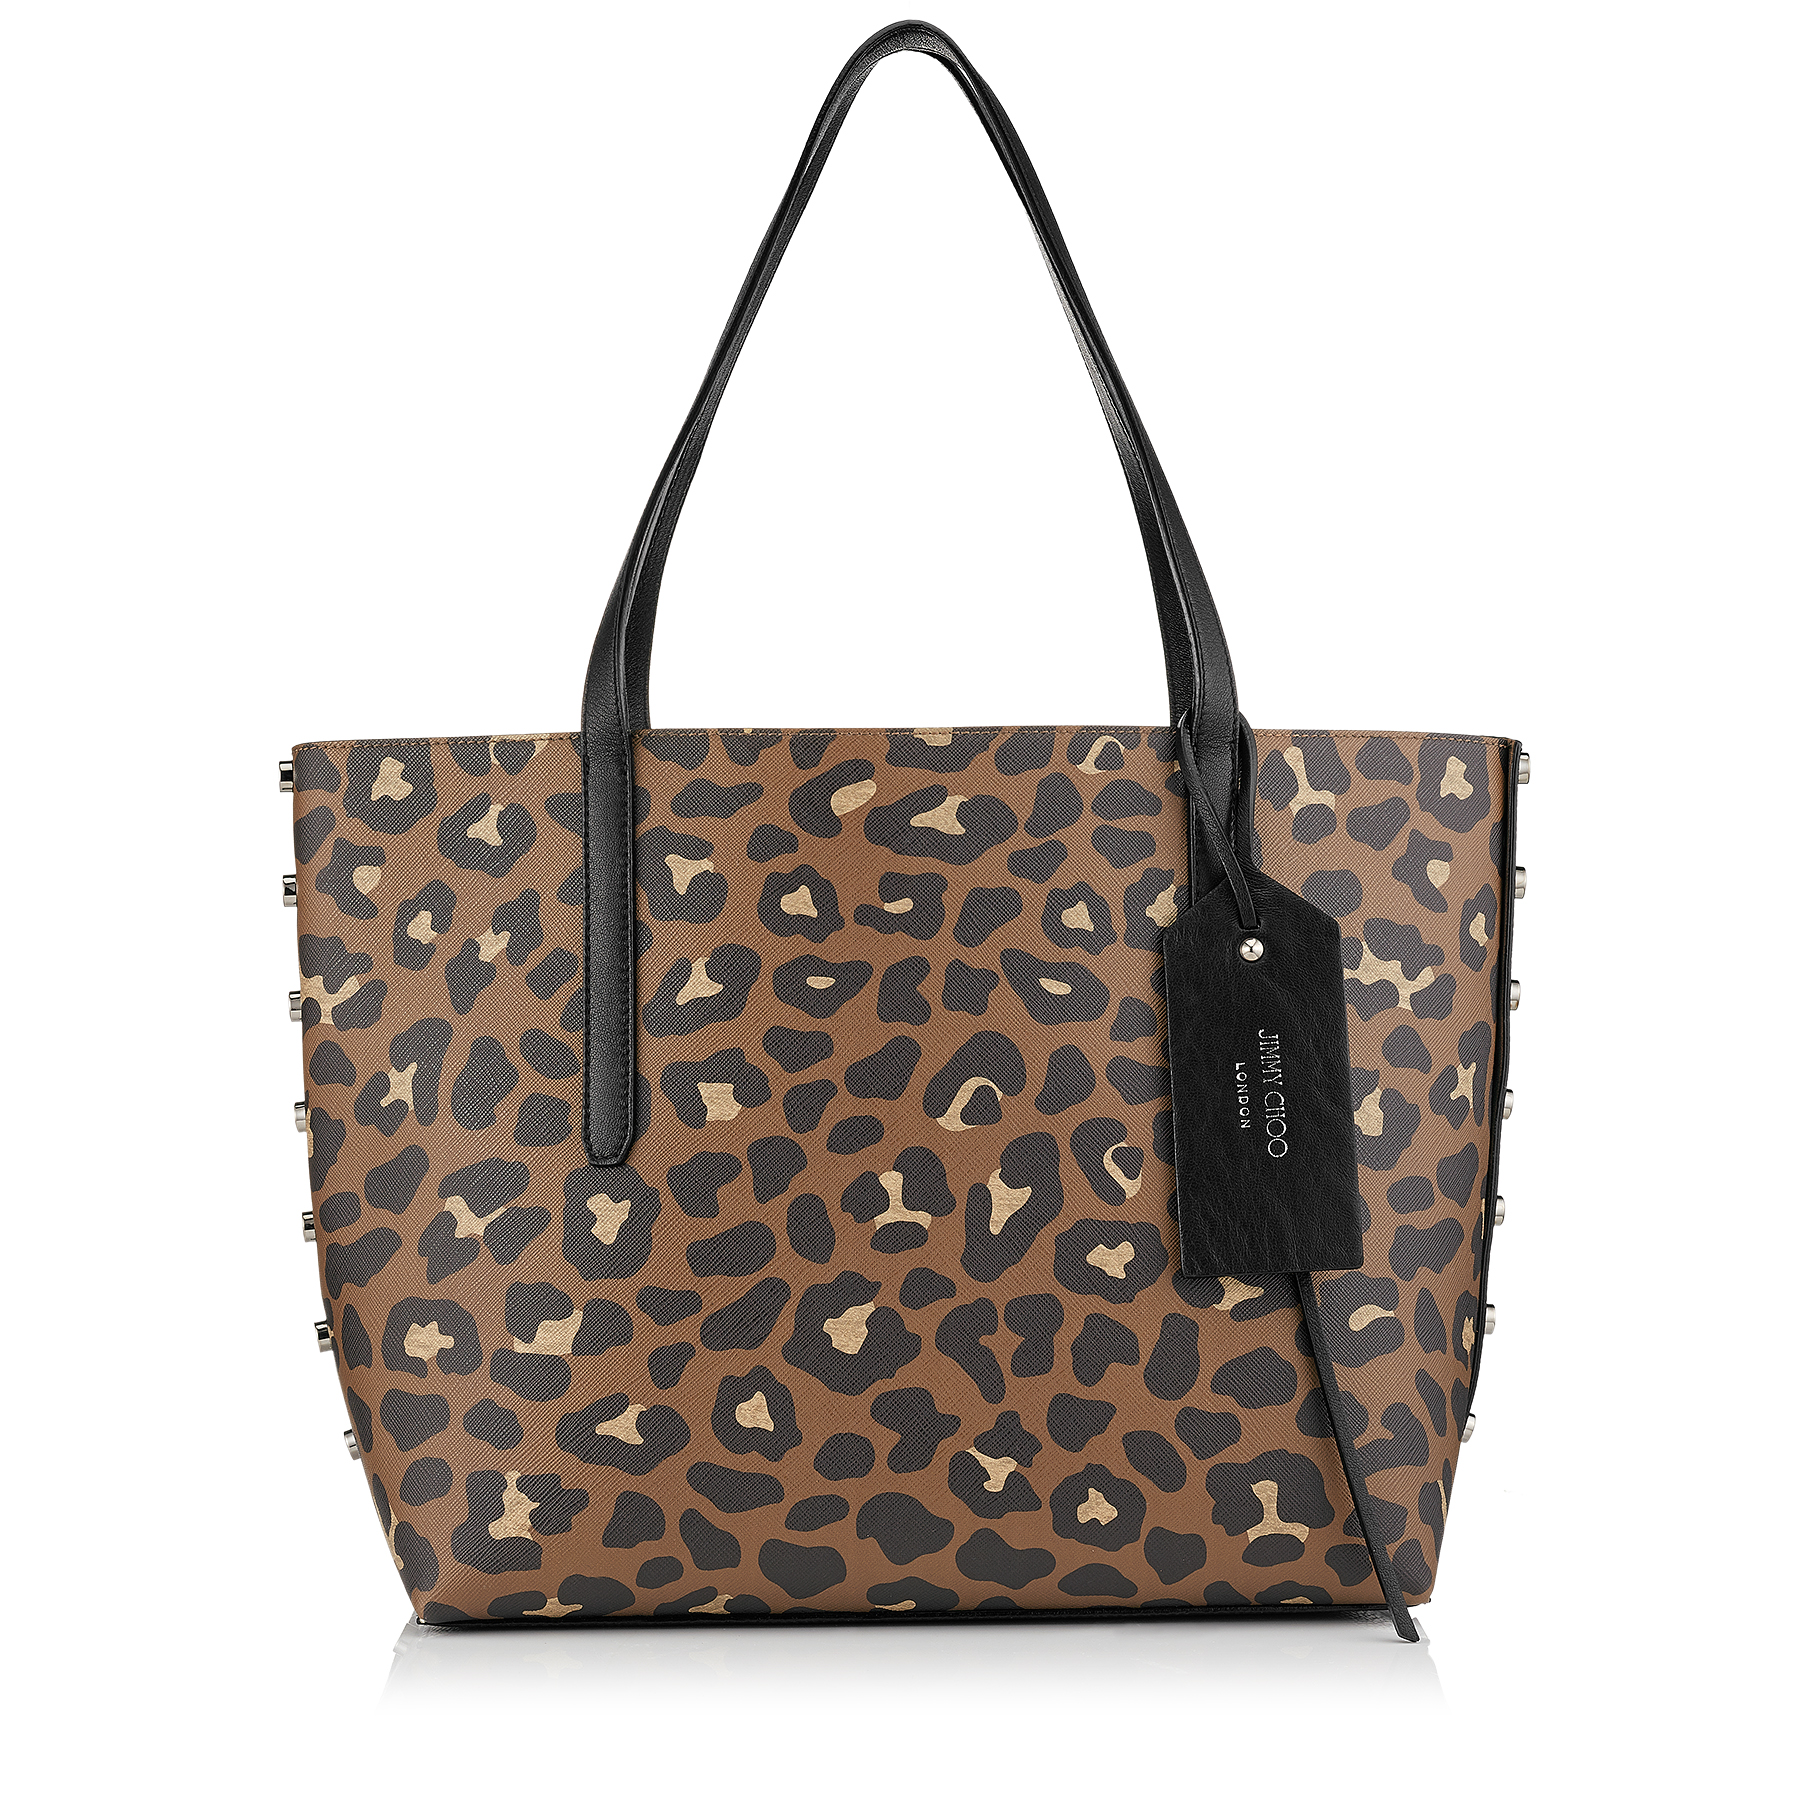 TWIST EAST WEST Hazelnut Mix Leopard Print Coated Canvas and Grainy Calf Tote Bag